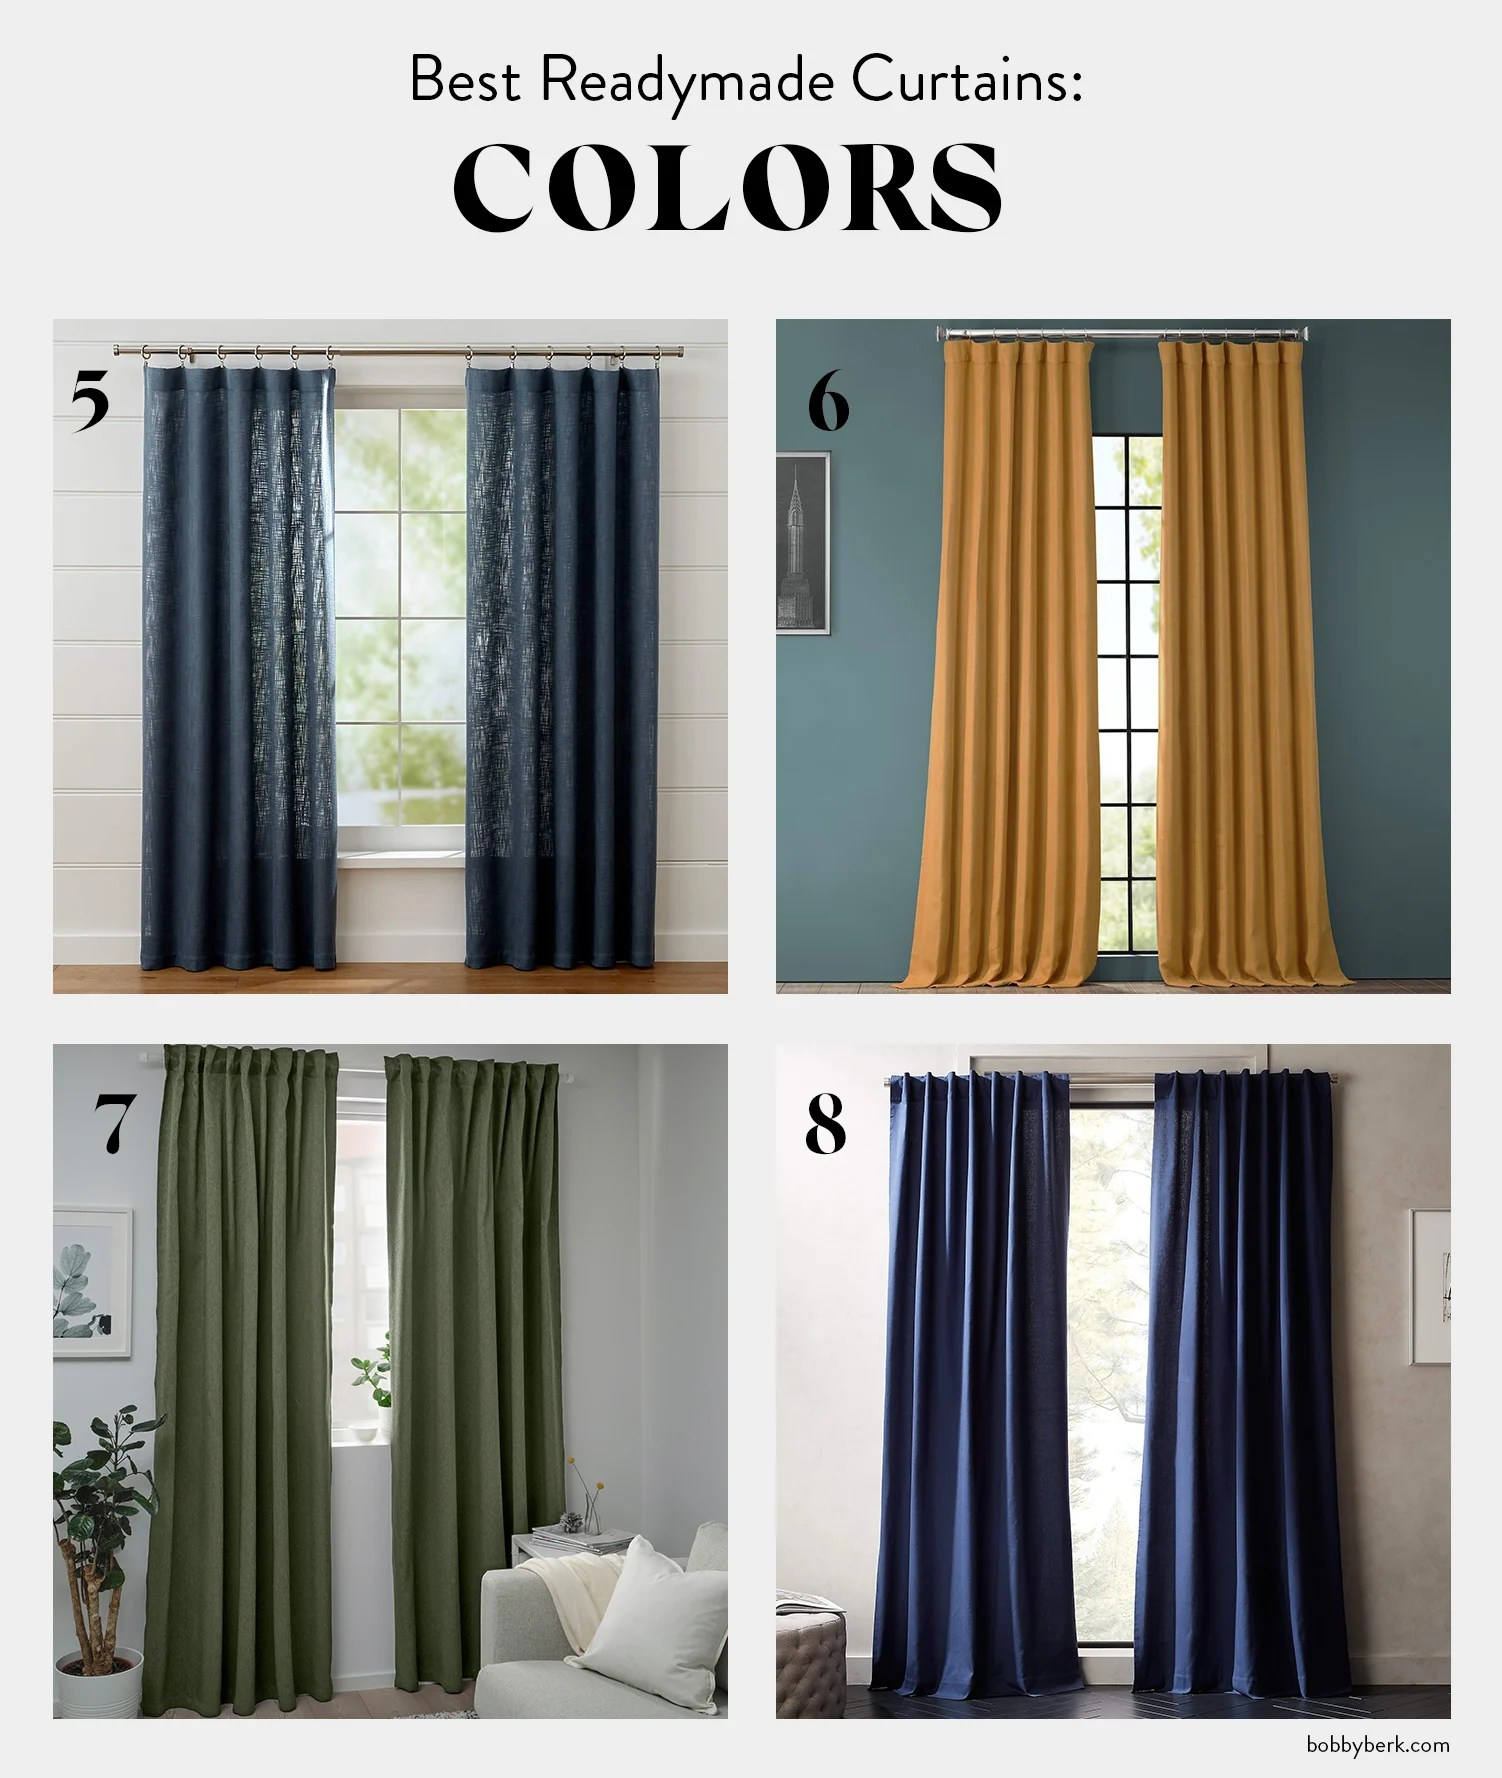 the 16 best readymade curtains all for